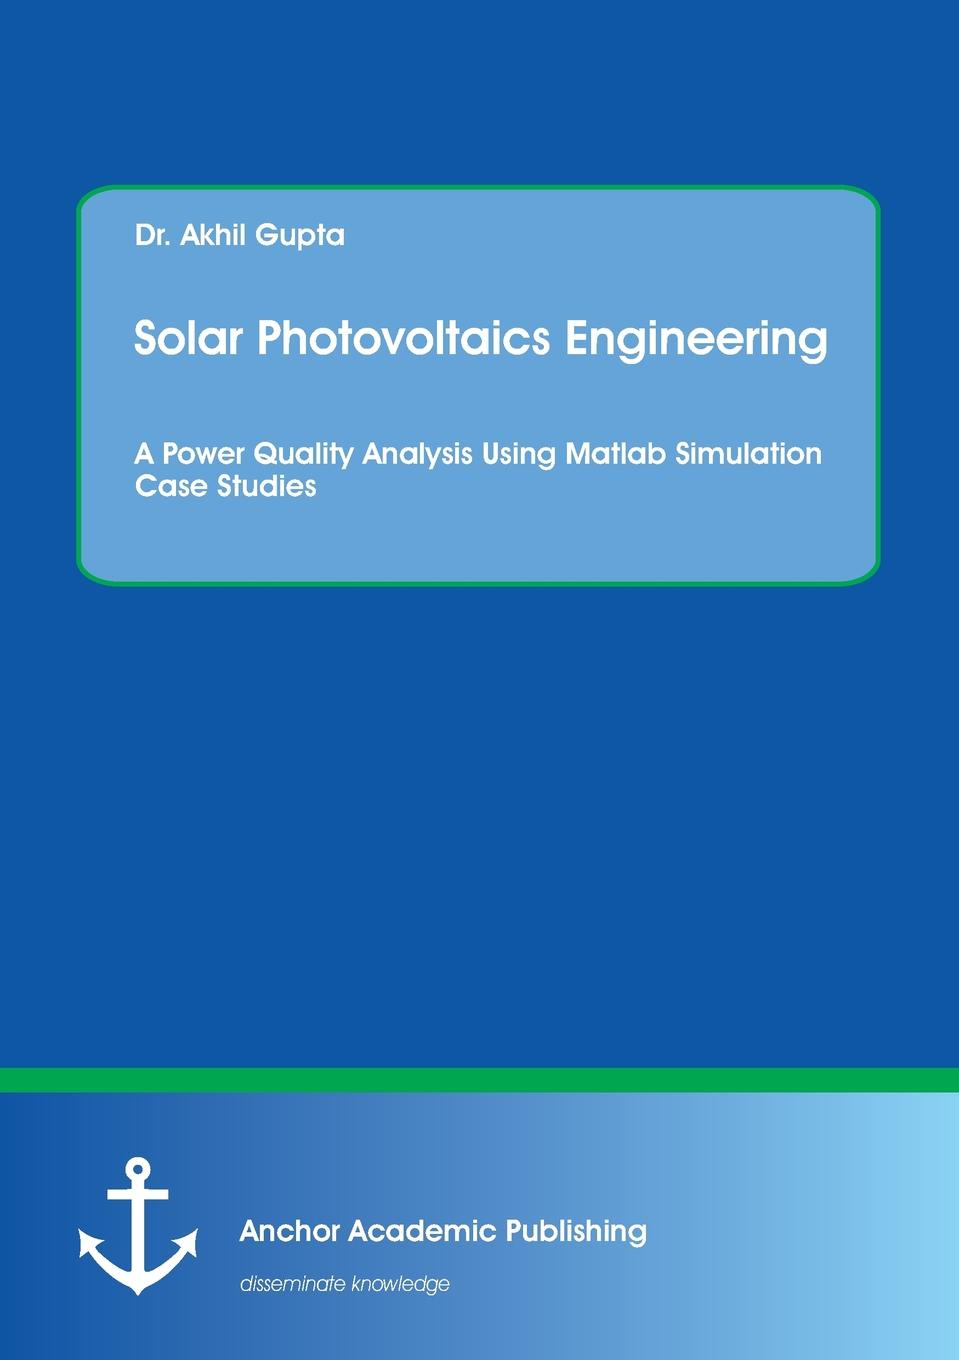 Akhil Gupta Solar Photovoltaics Engineering. A Power Quality Analysis Using Matlab Simulation Case Studies jumaah raihan sulaiman new technique for maximum power point tracker on photovoltaic systems